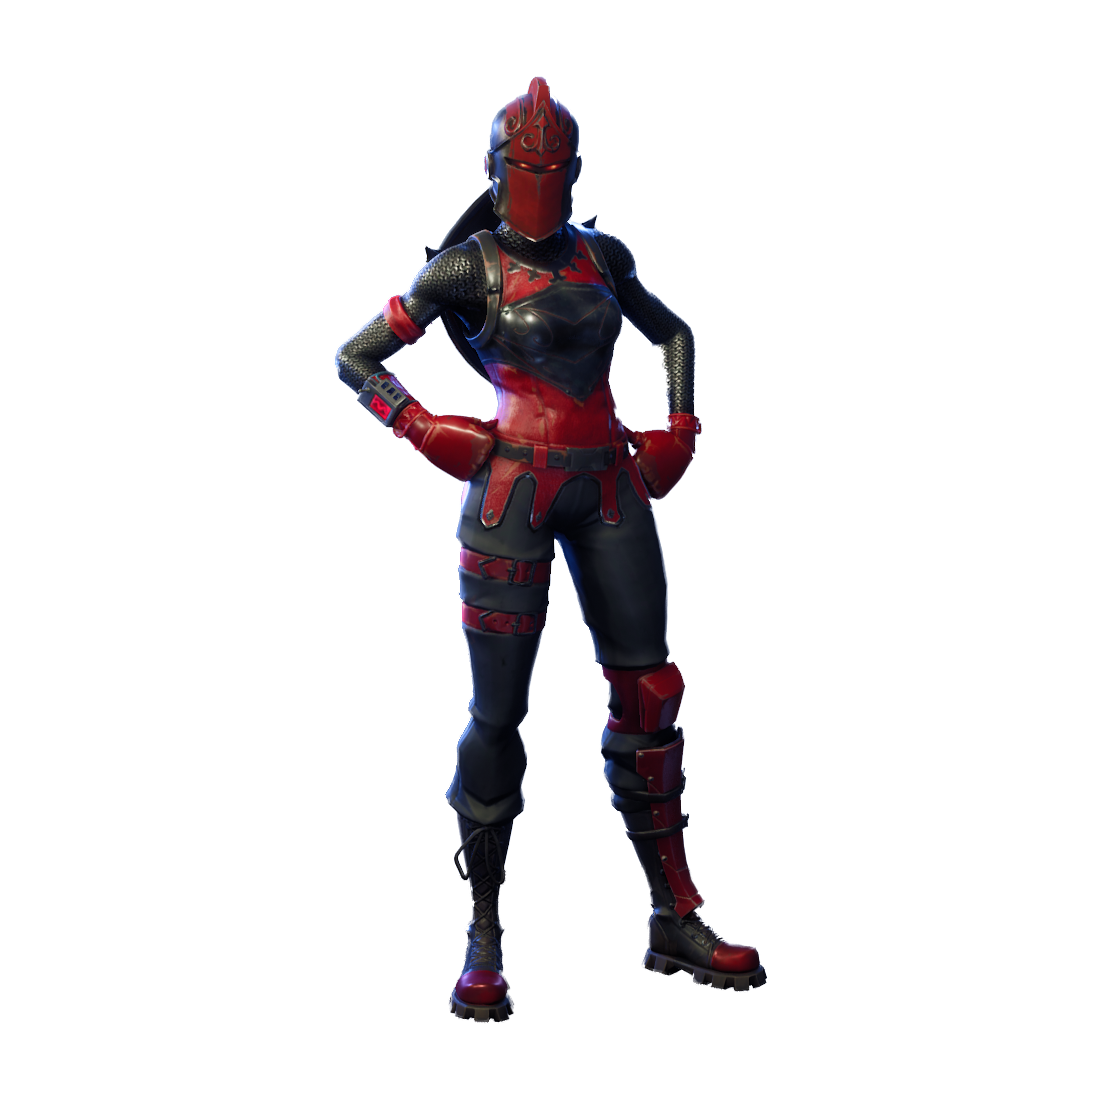 Fortnite Red Knight Png Image Purepng Free Transparent Cc0 Png